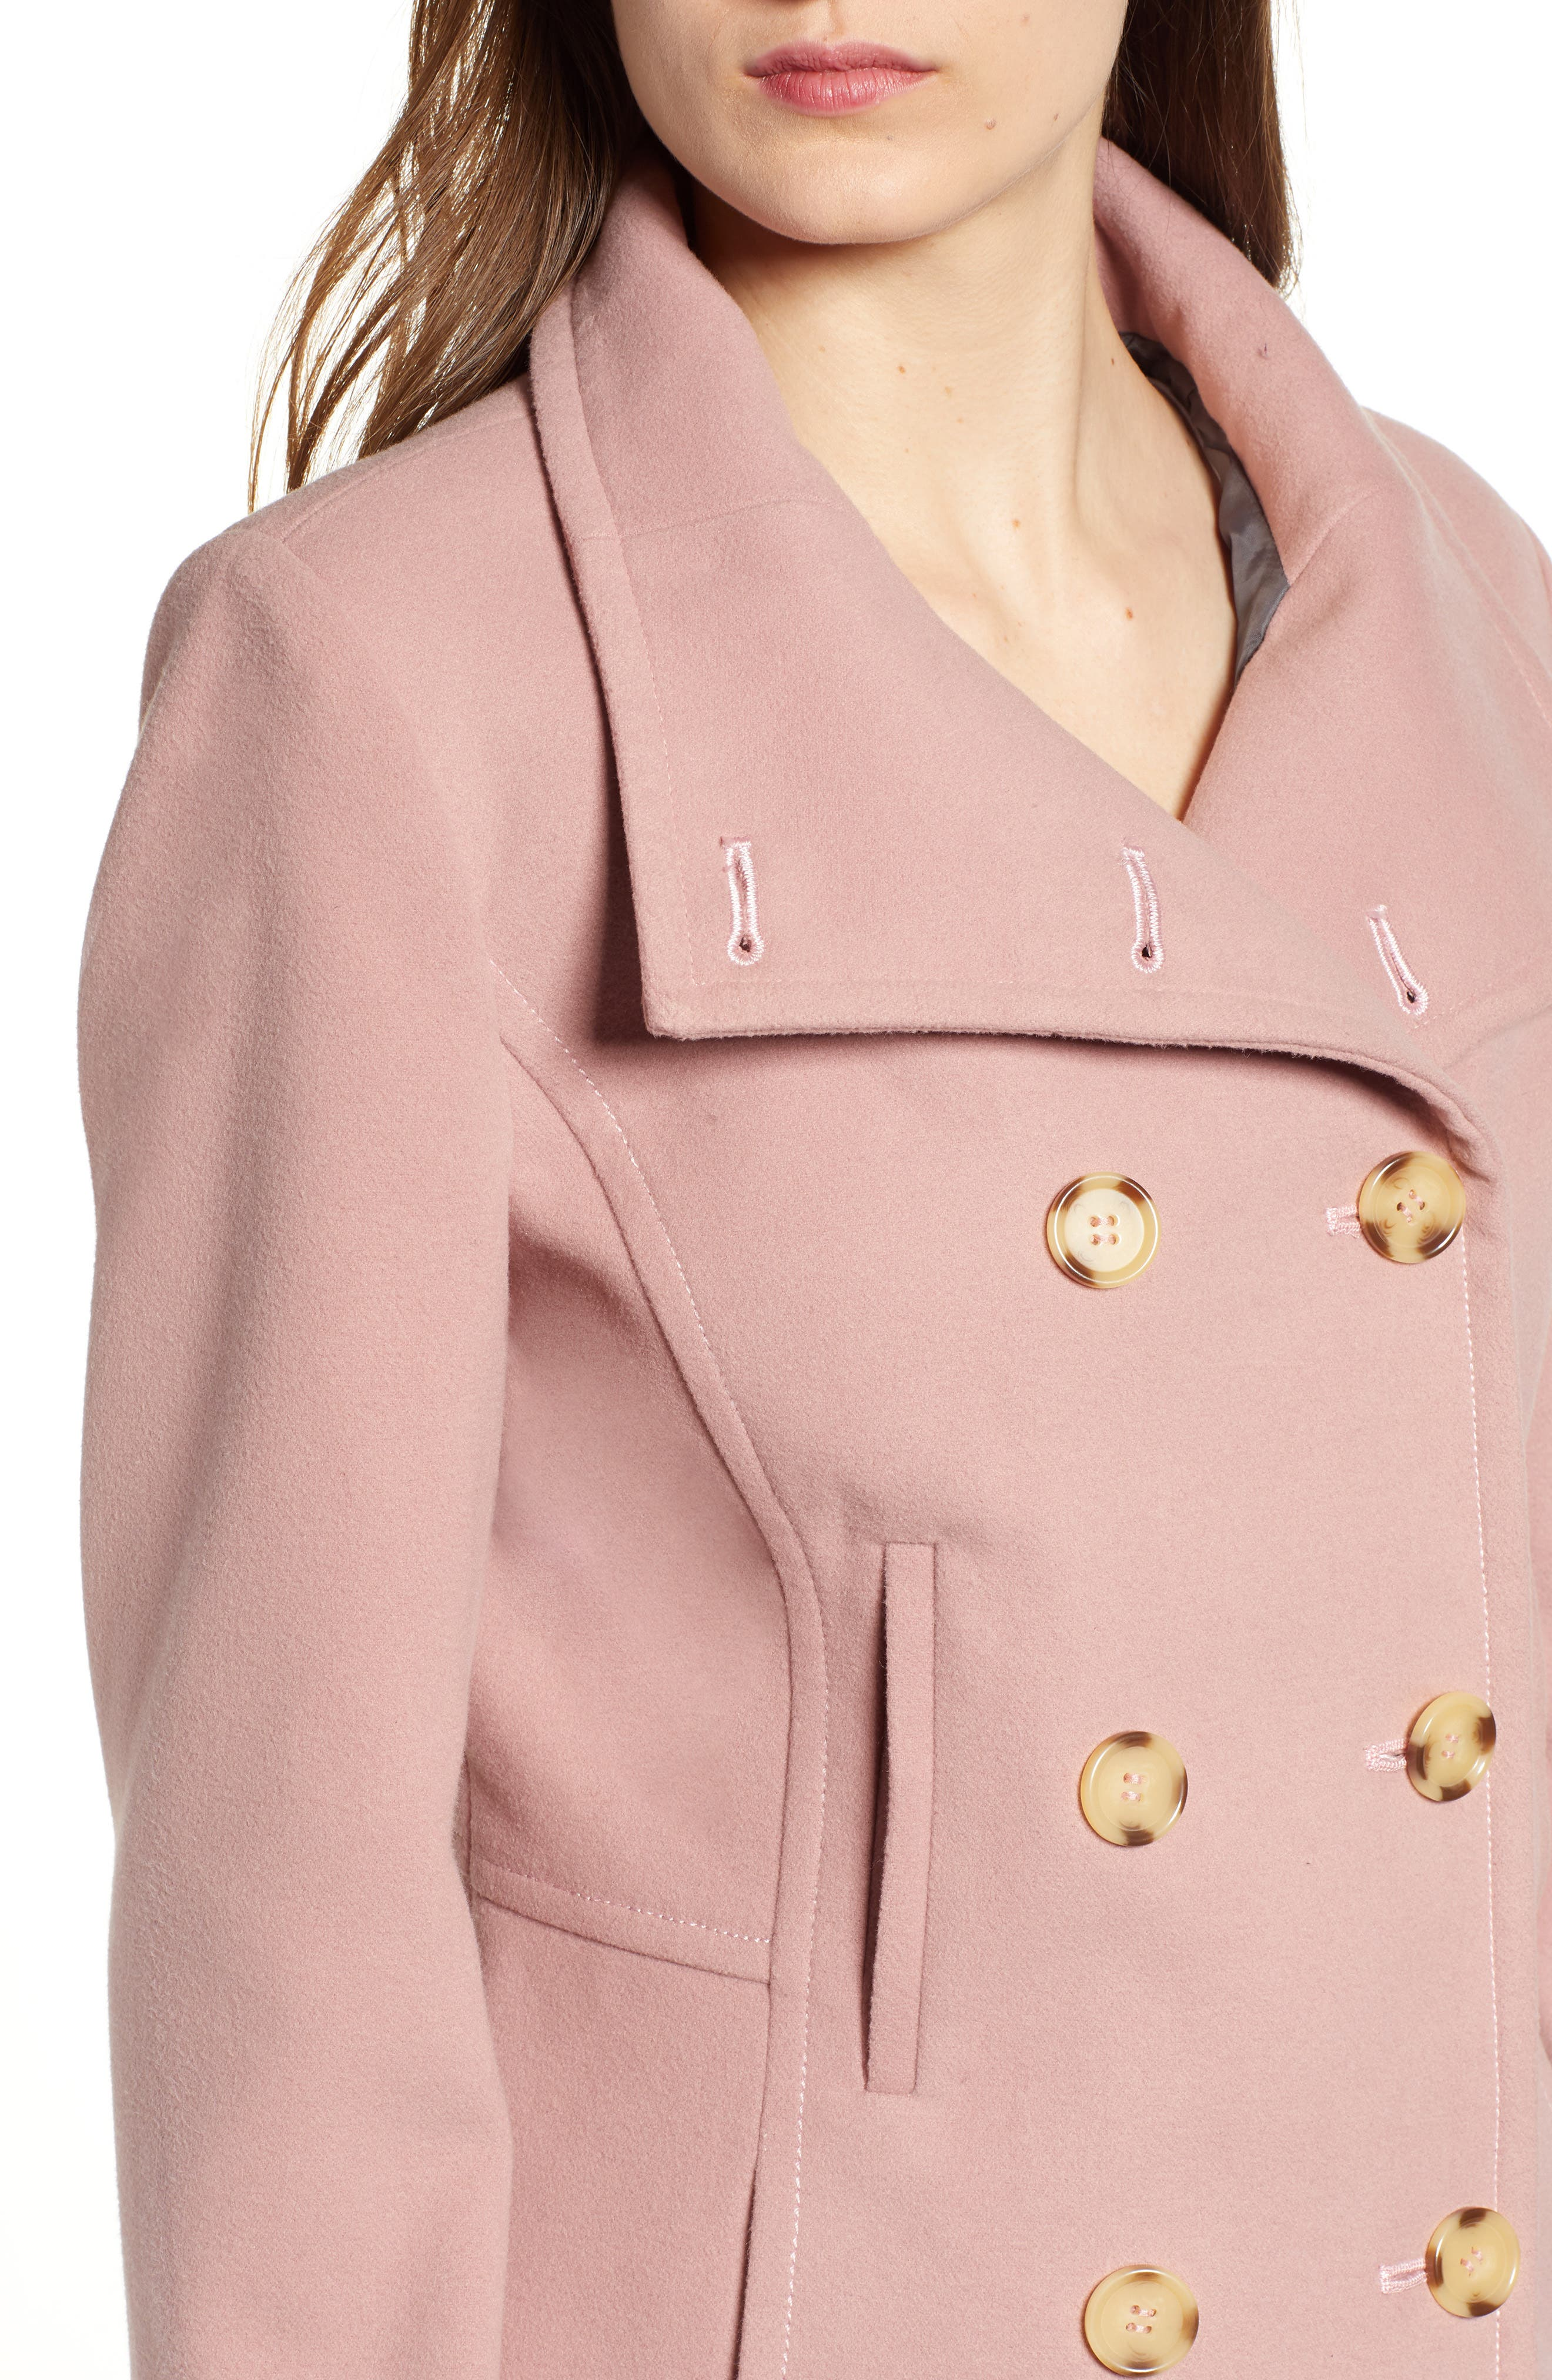 THREAD & SUPPLY,                             Double Breasted Peacoat,                             Alternate thumbnail 5, color,                             BLUSH